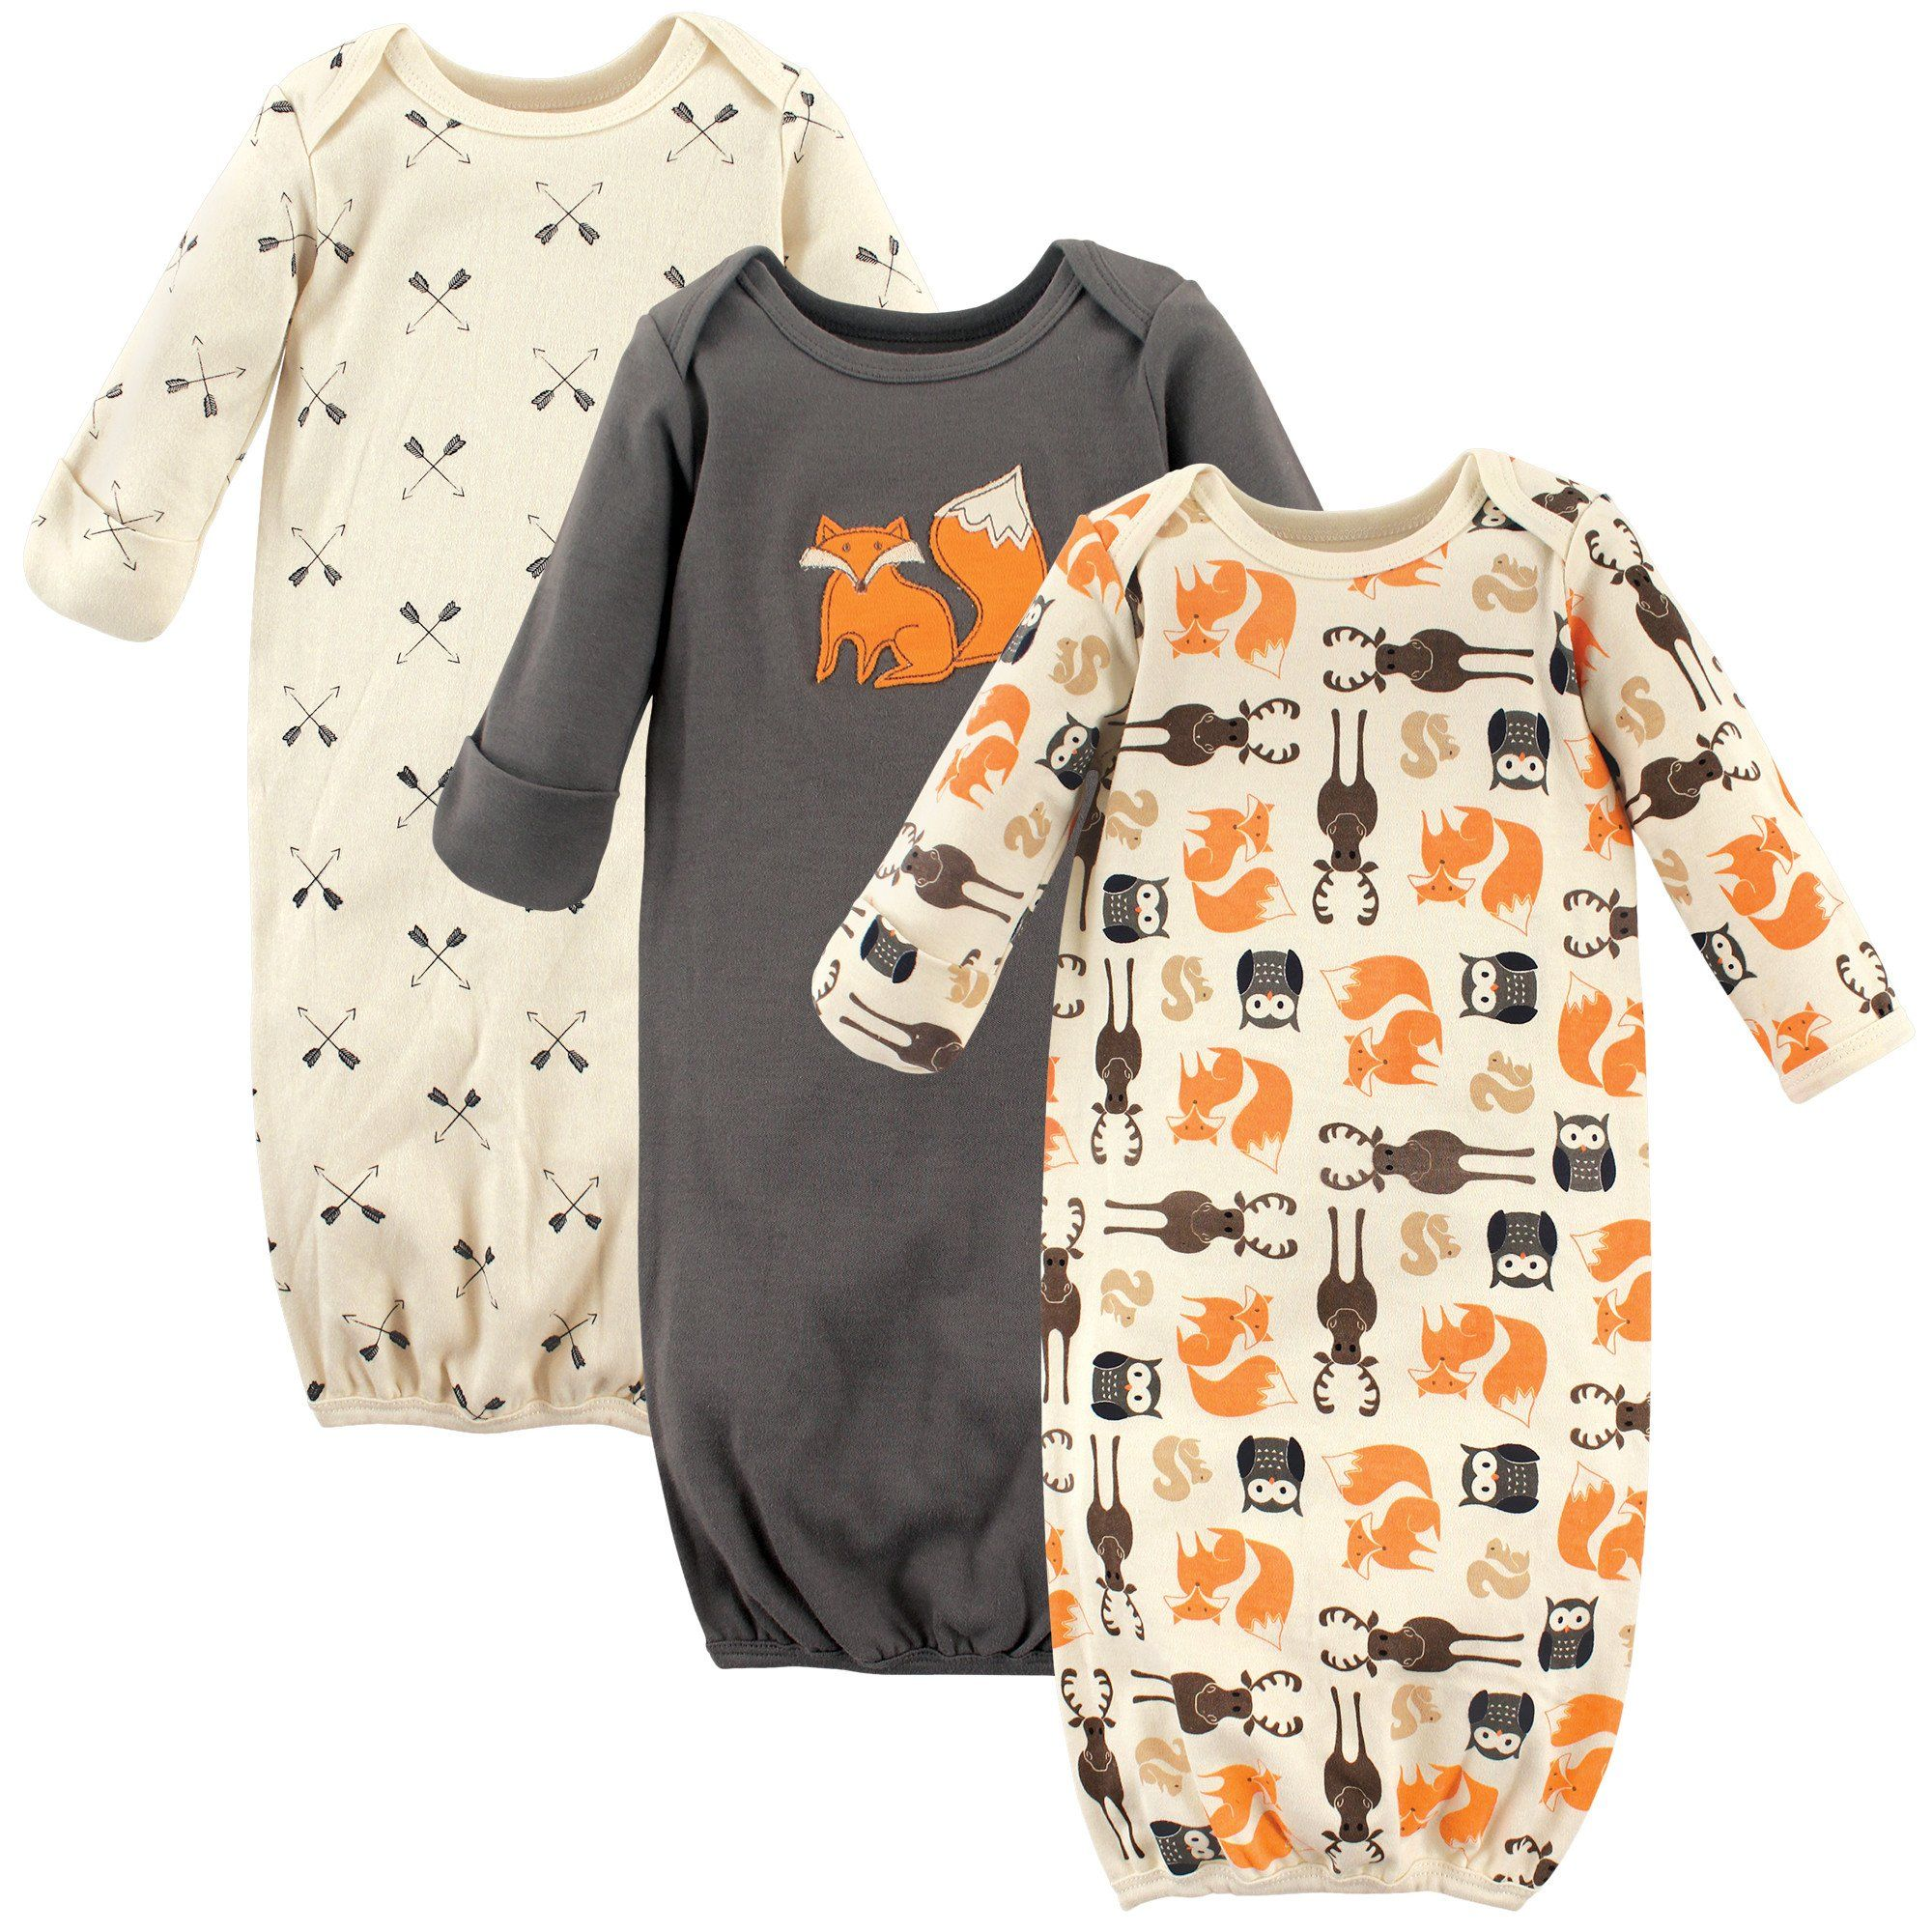 Hudson Baby Baby Infant Cotton Gown 3 Pack Forest 06 Months Read